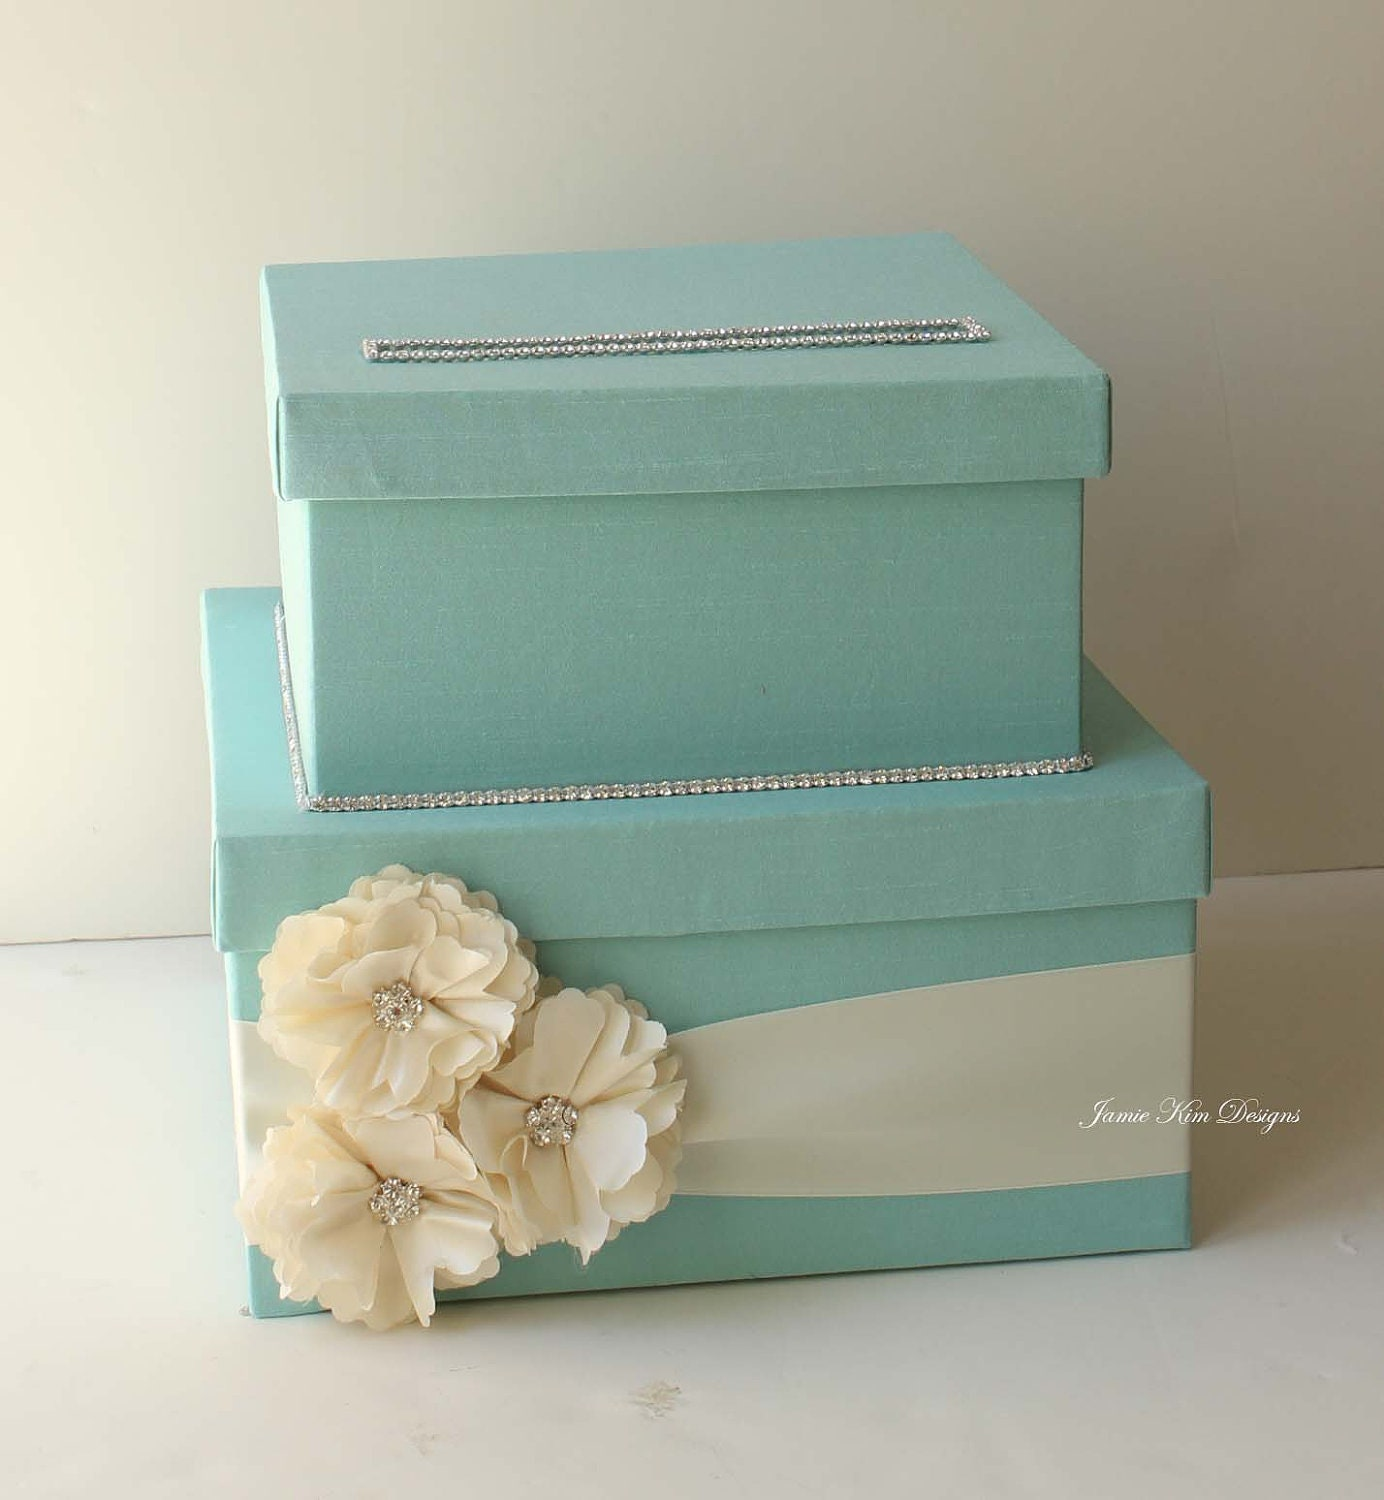 Wedding Gift Box Etsy : Lovely Wedding Card Box Money Box Gift Card Box by jamiekimdesigns